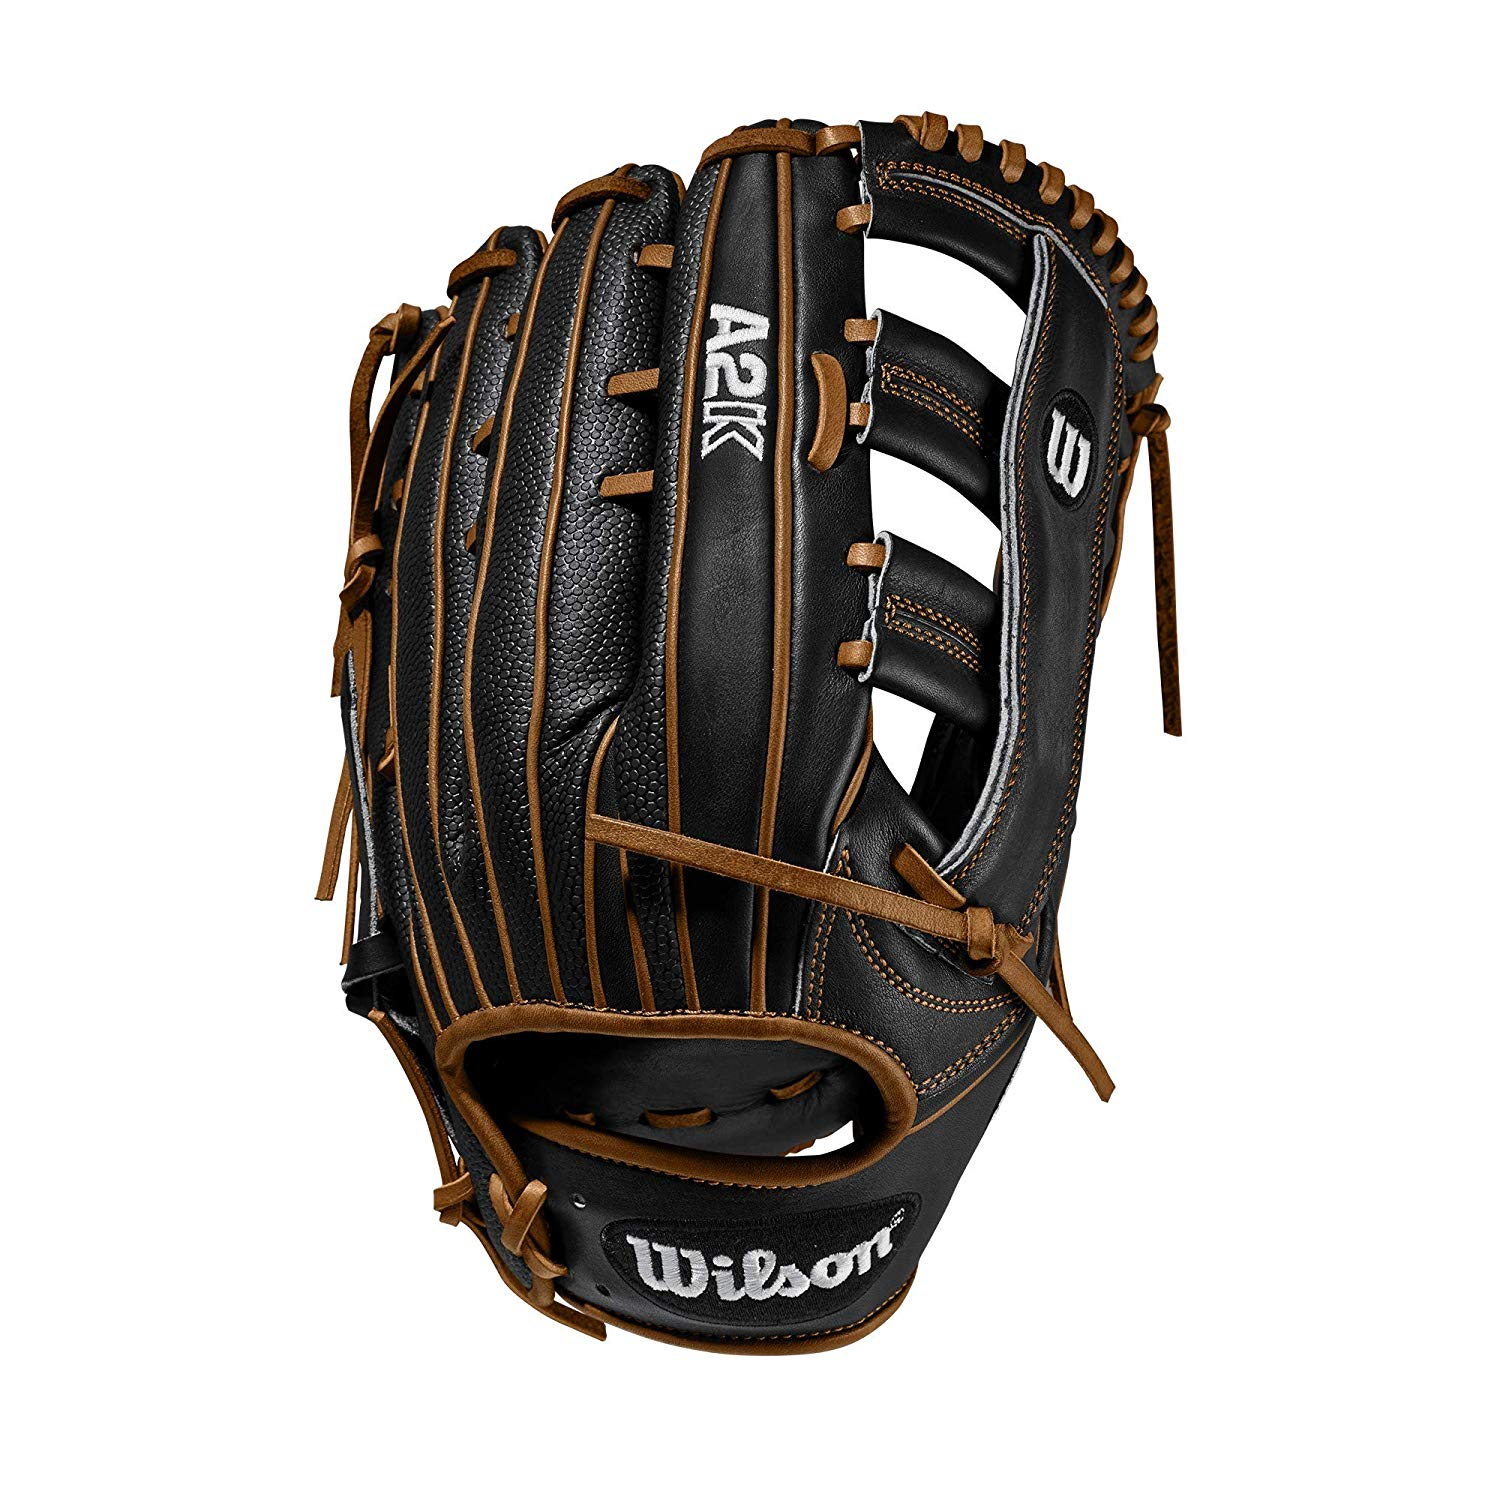 wilson-a2k-1775-12-75-baseball-glove-right-hand-throw WTA2KRB201775SS-RightHandThrow Wilson 887768815271 Wide Single Post Web and three times more shaping to help